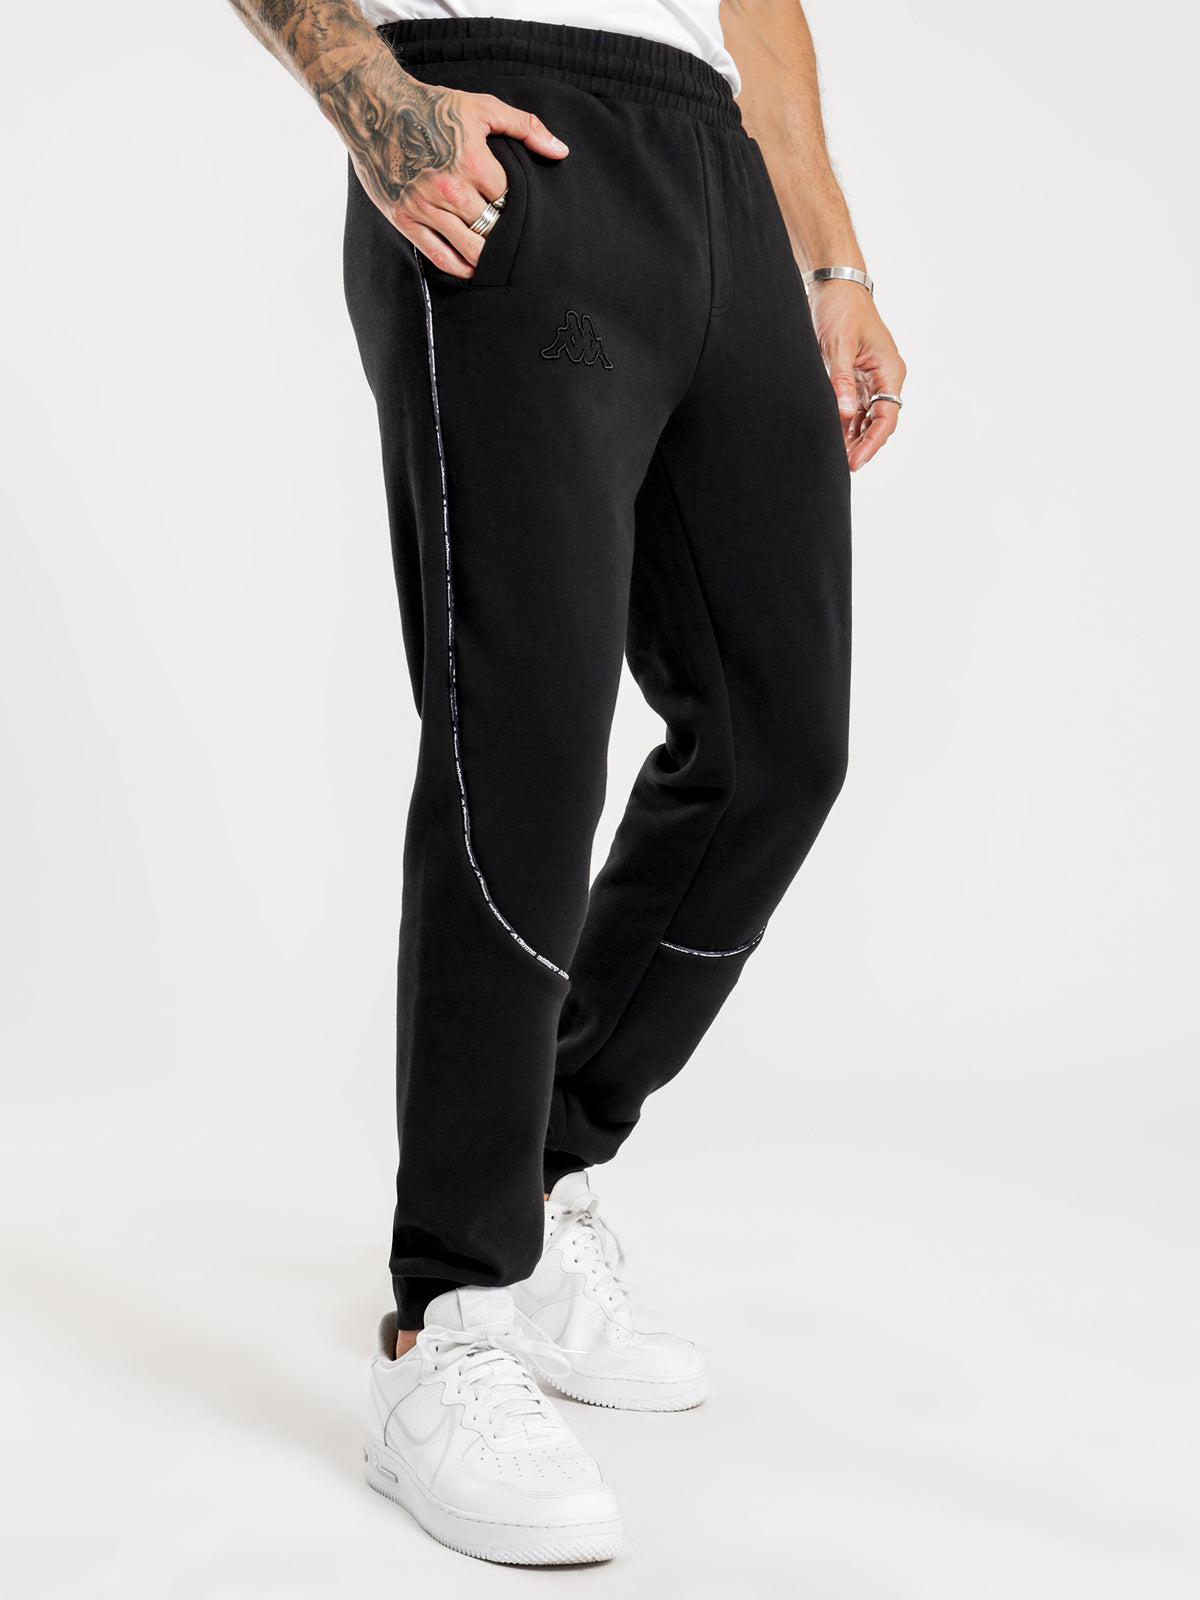 Logo Tape Bapa Track Pants in Black